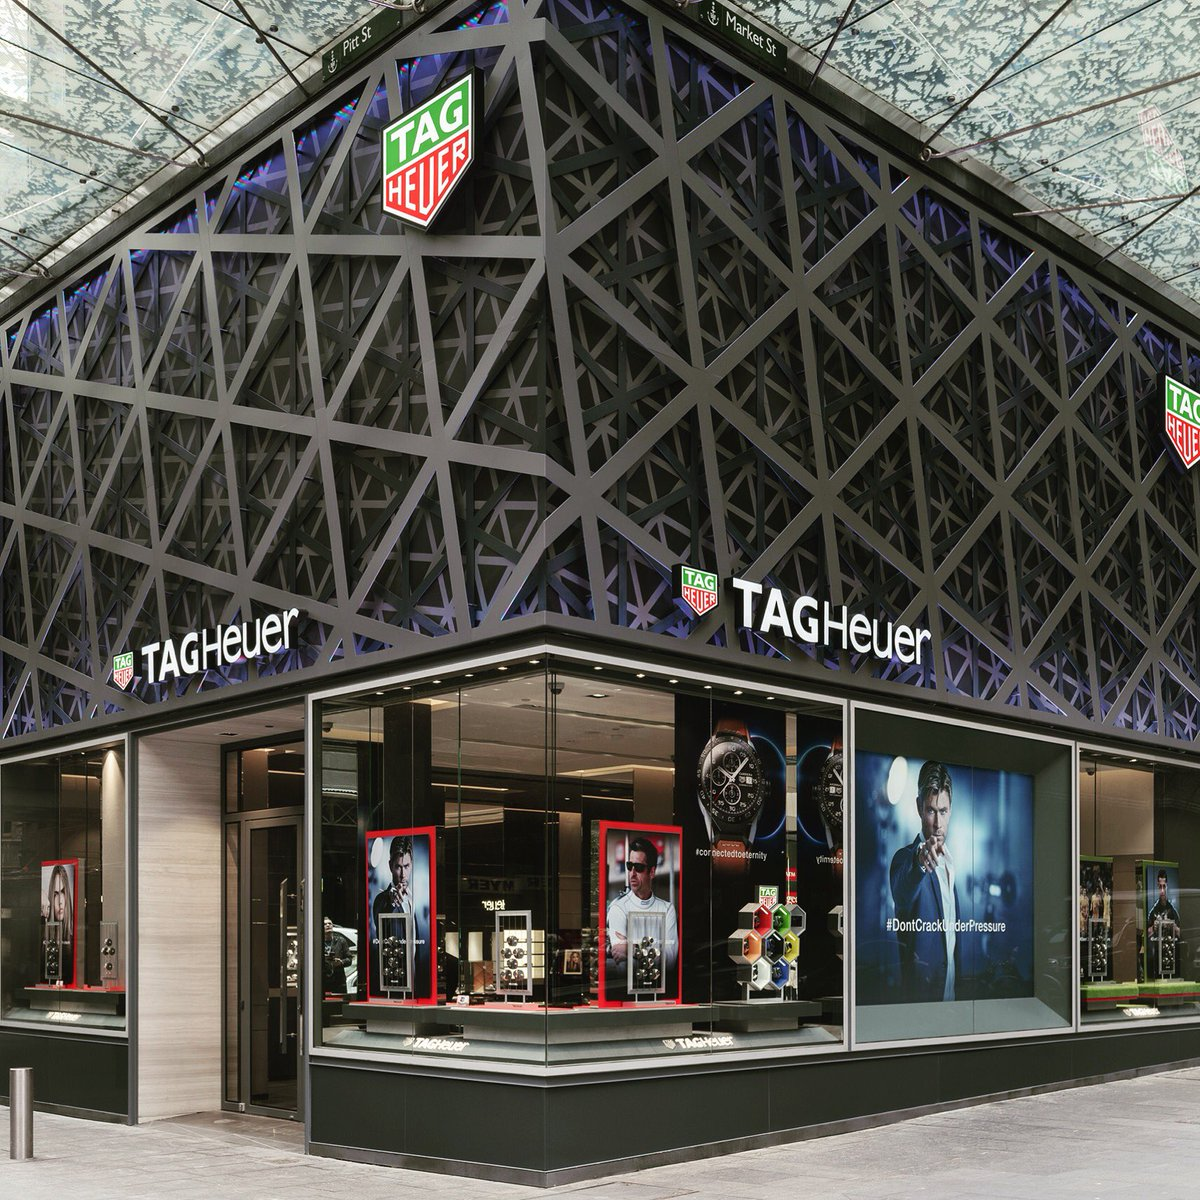 This morning @TAGHeuer reopened its flagship store on L2, a world's first unveiling of their new design concept